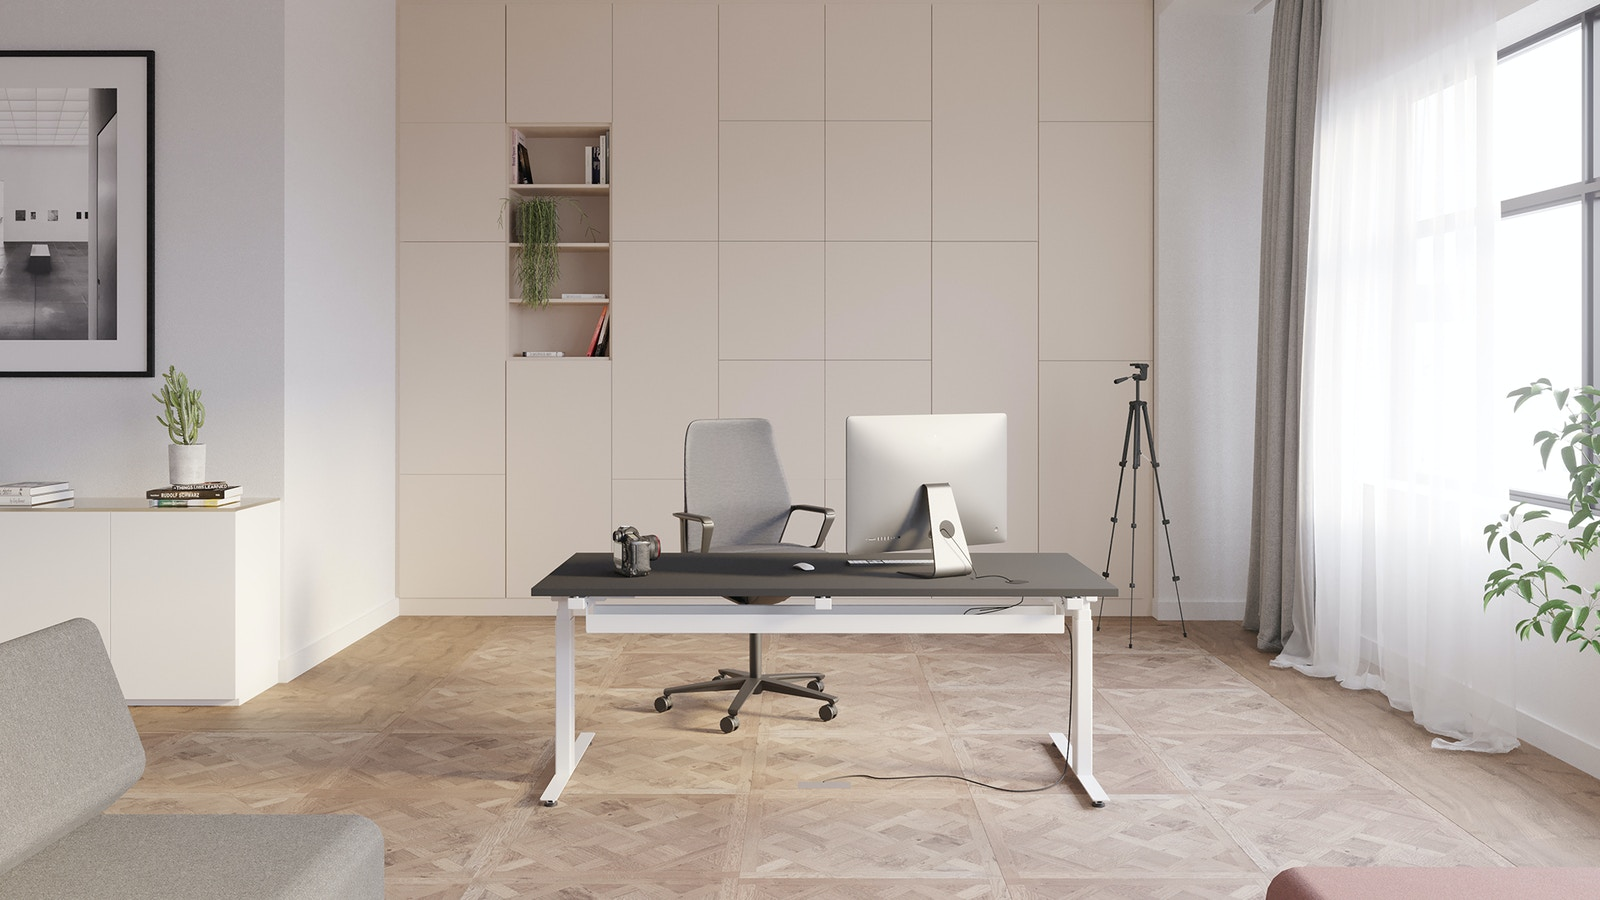 Home office with parquet floor, height-adjustable desk with white table form and black tabletop with a swivel chair in grey and black. Behind the workstation is a white panel, right is a window with curtains and a telescope. At the left side is a white shelf an a picture above. In the front you can see lounge furniture.